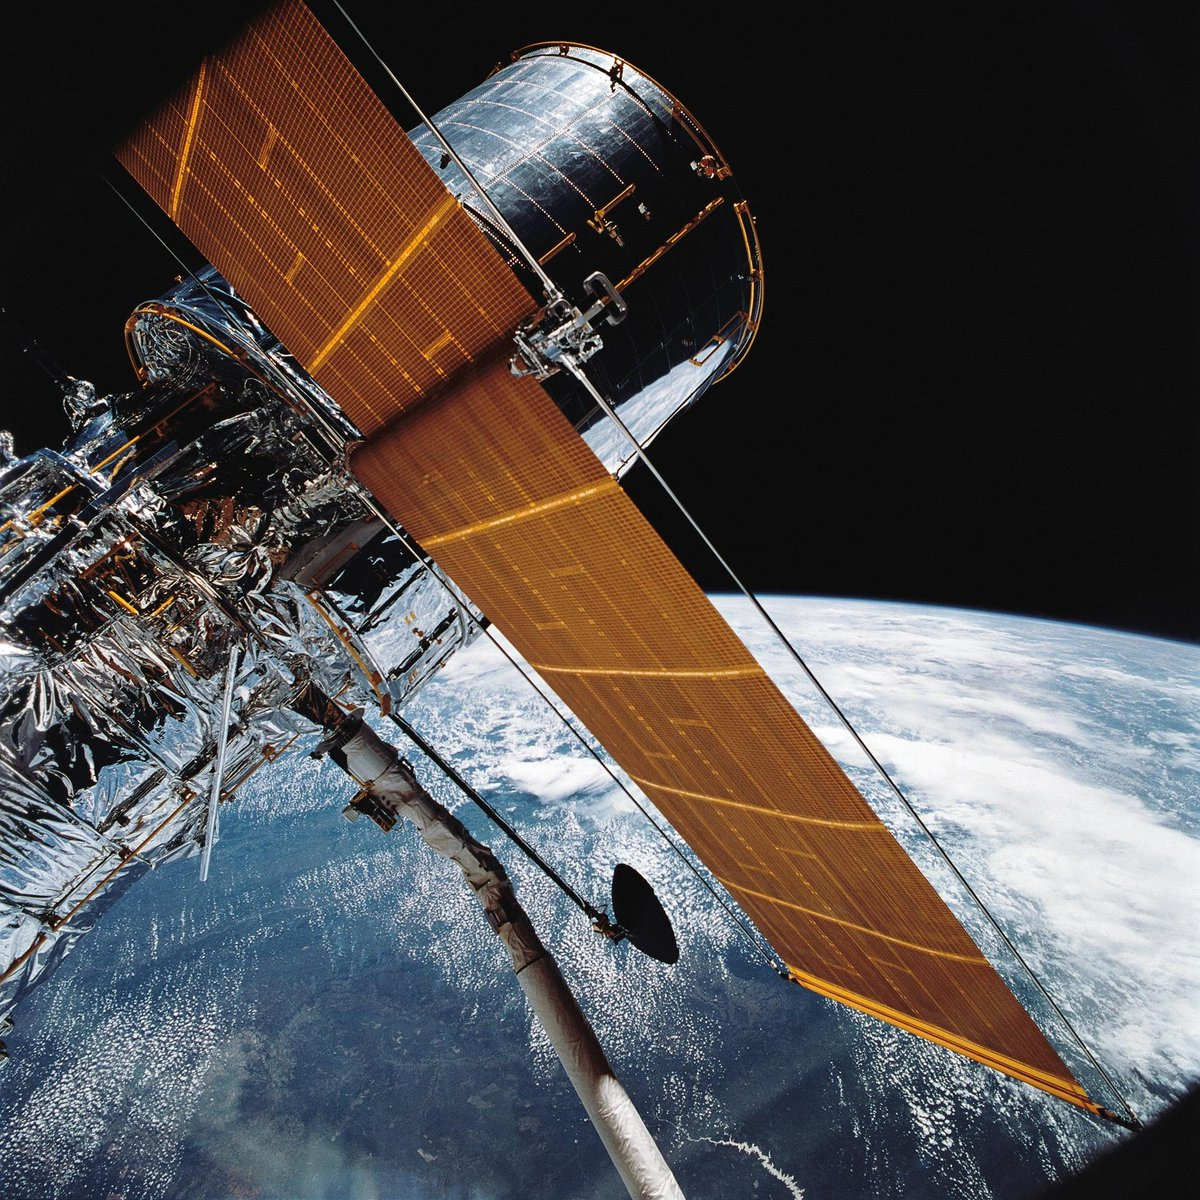 On this day in 1990, the #Hubble Space Telescope was deployed -- but with a fatal flaw.